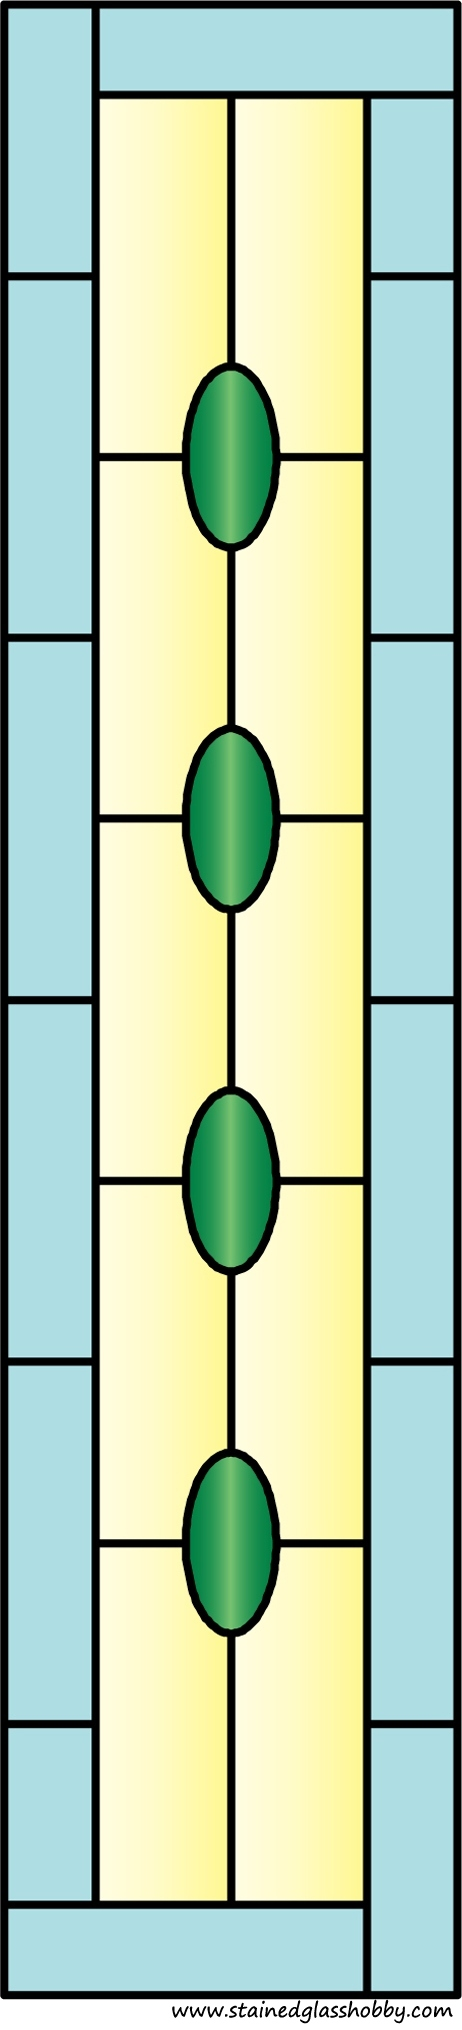 Rectangular panel for stained glass design 3